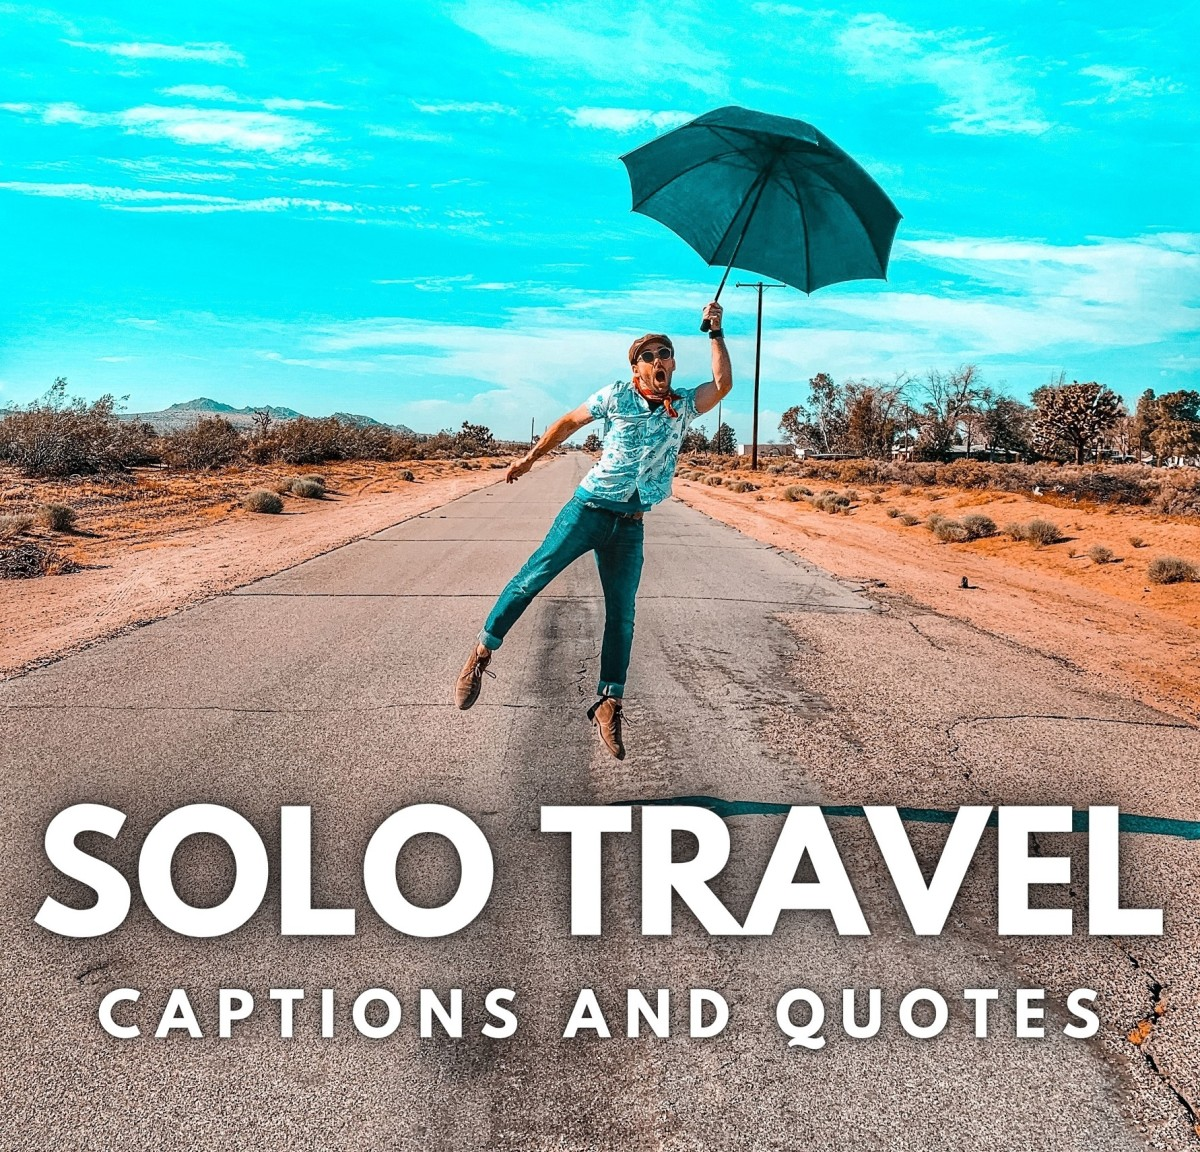 150+ Solo Travel Quotes and Caption Ideas for Instagram